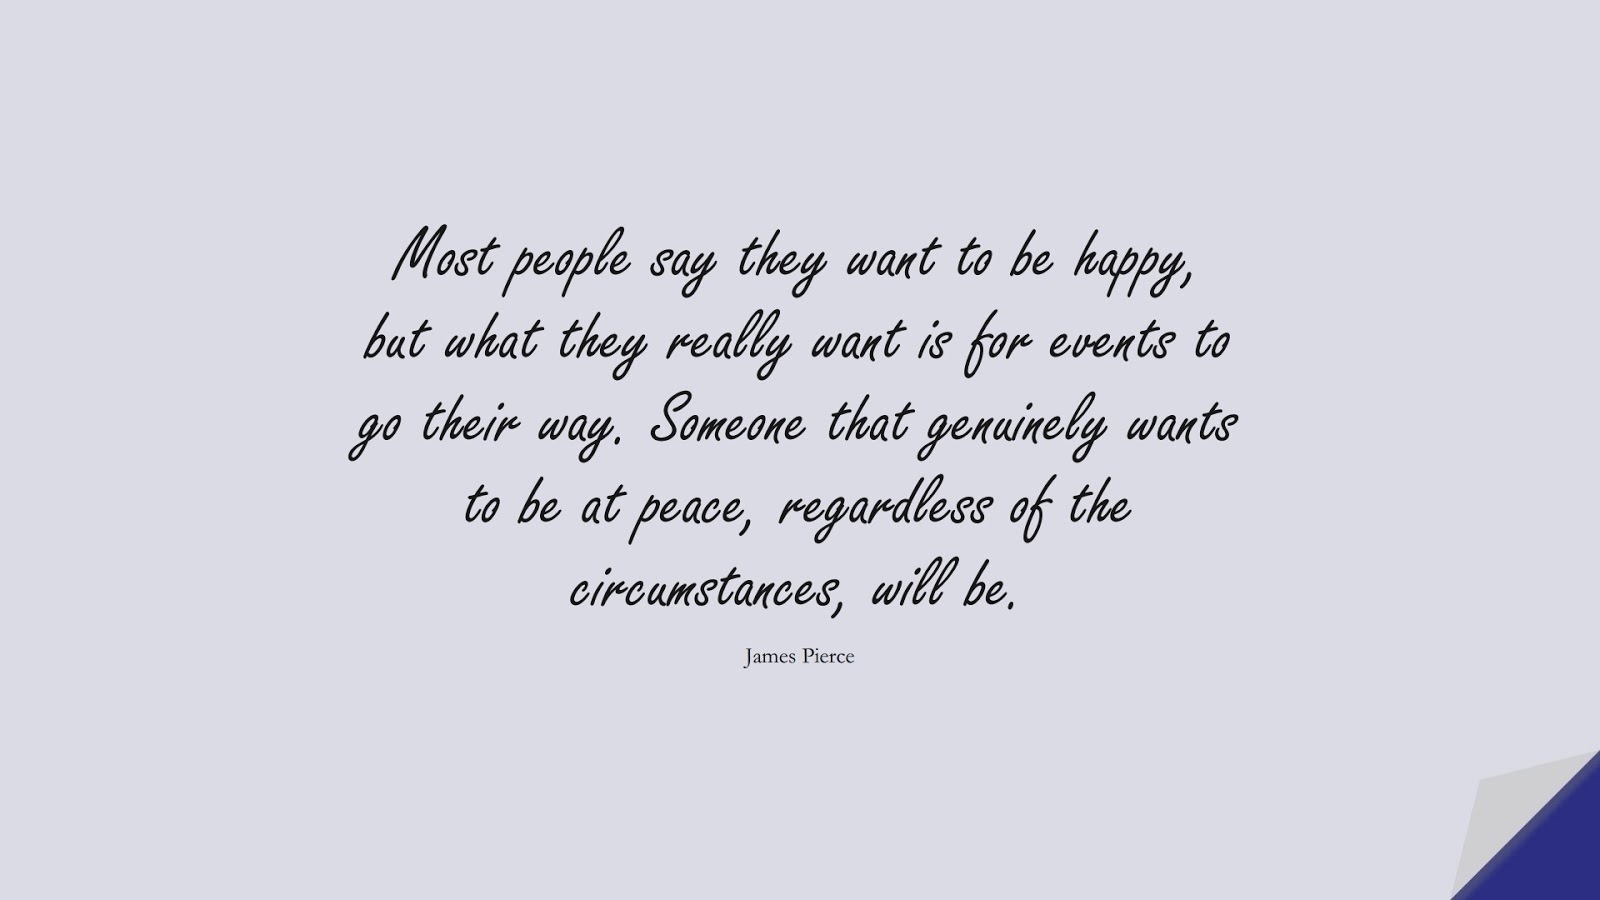 Most people say they want to be happy, but what they really want is for events to go their way. Someone that genuinely wants to be at peace, regardless of the circumstances, will be. (James Pierce);  #BeingStrongQuotes